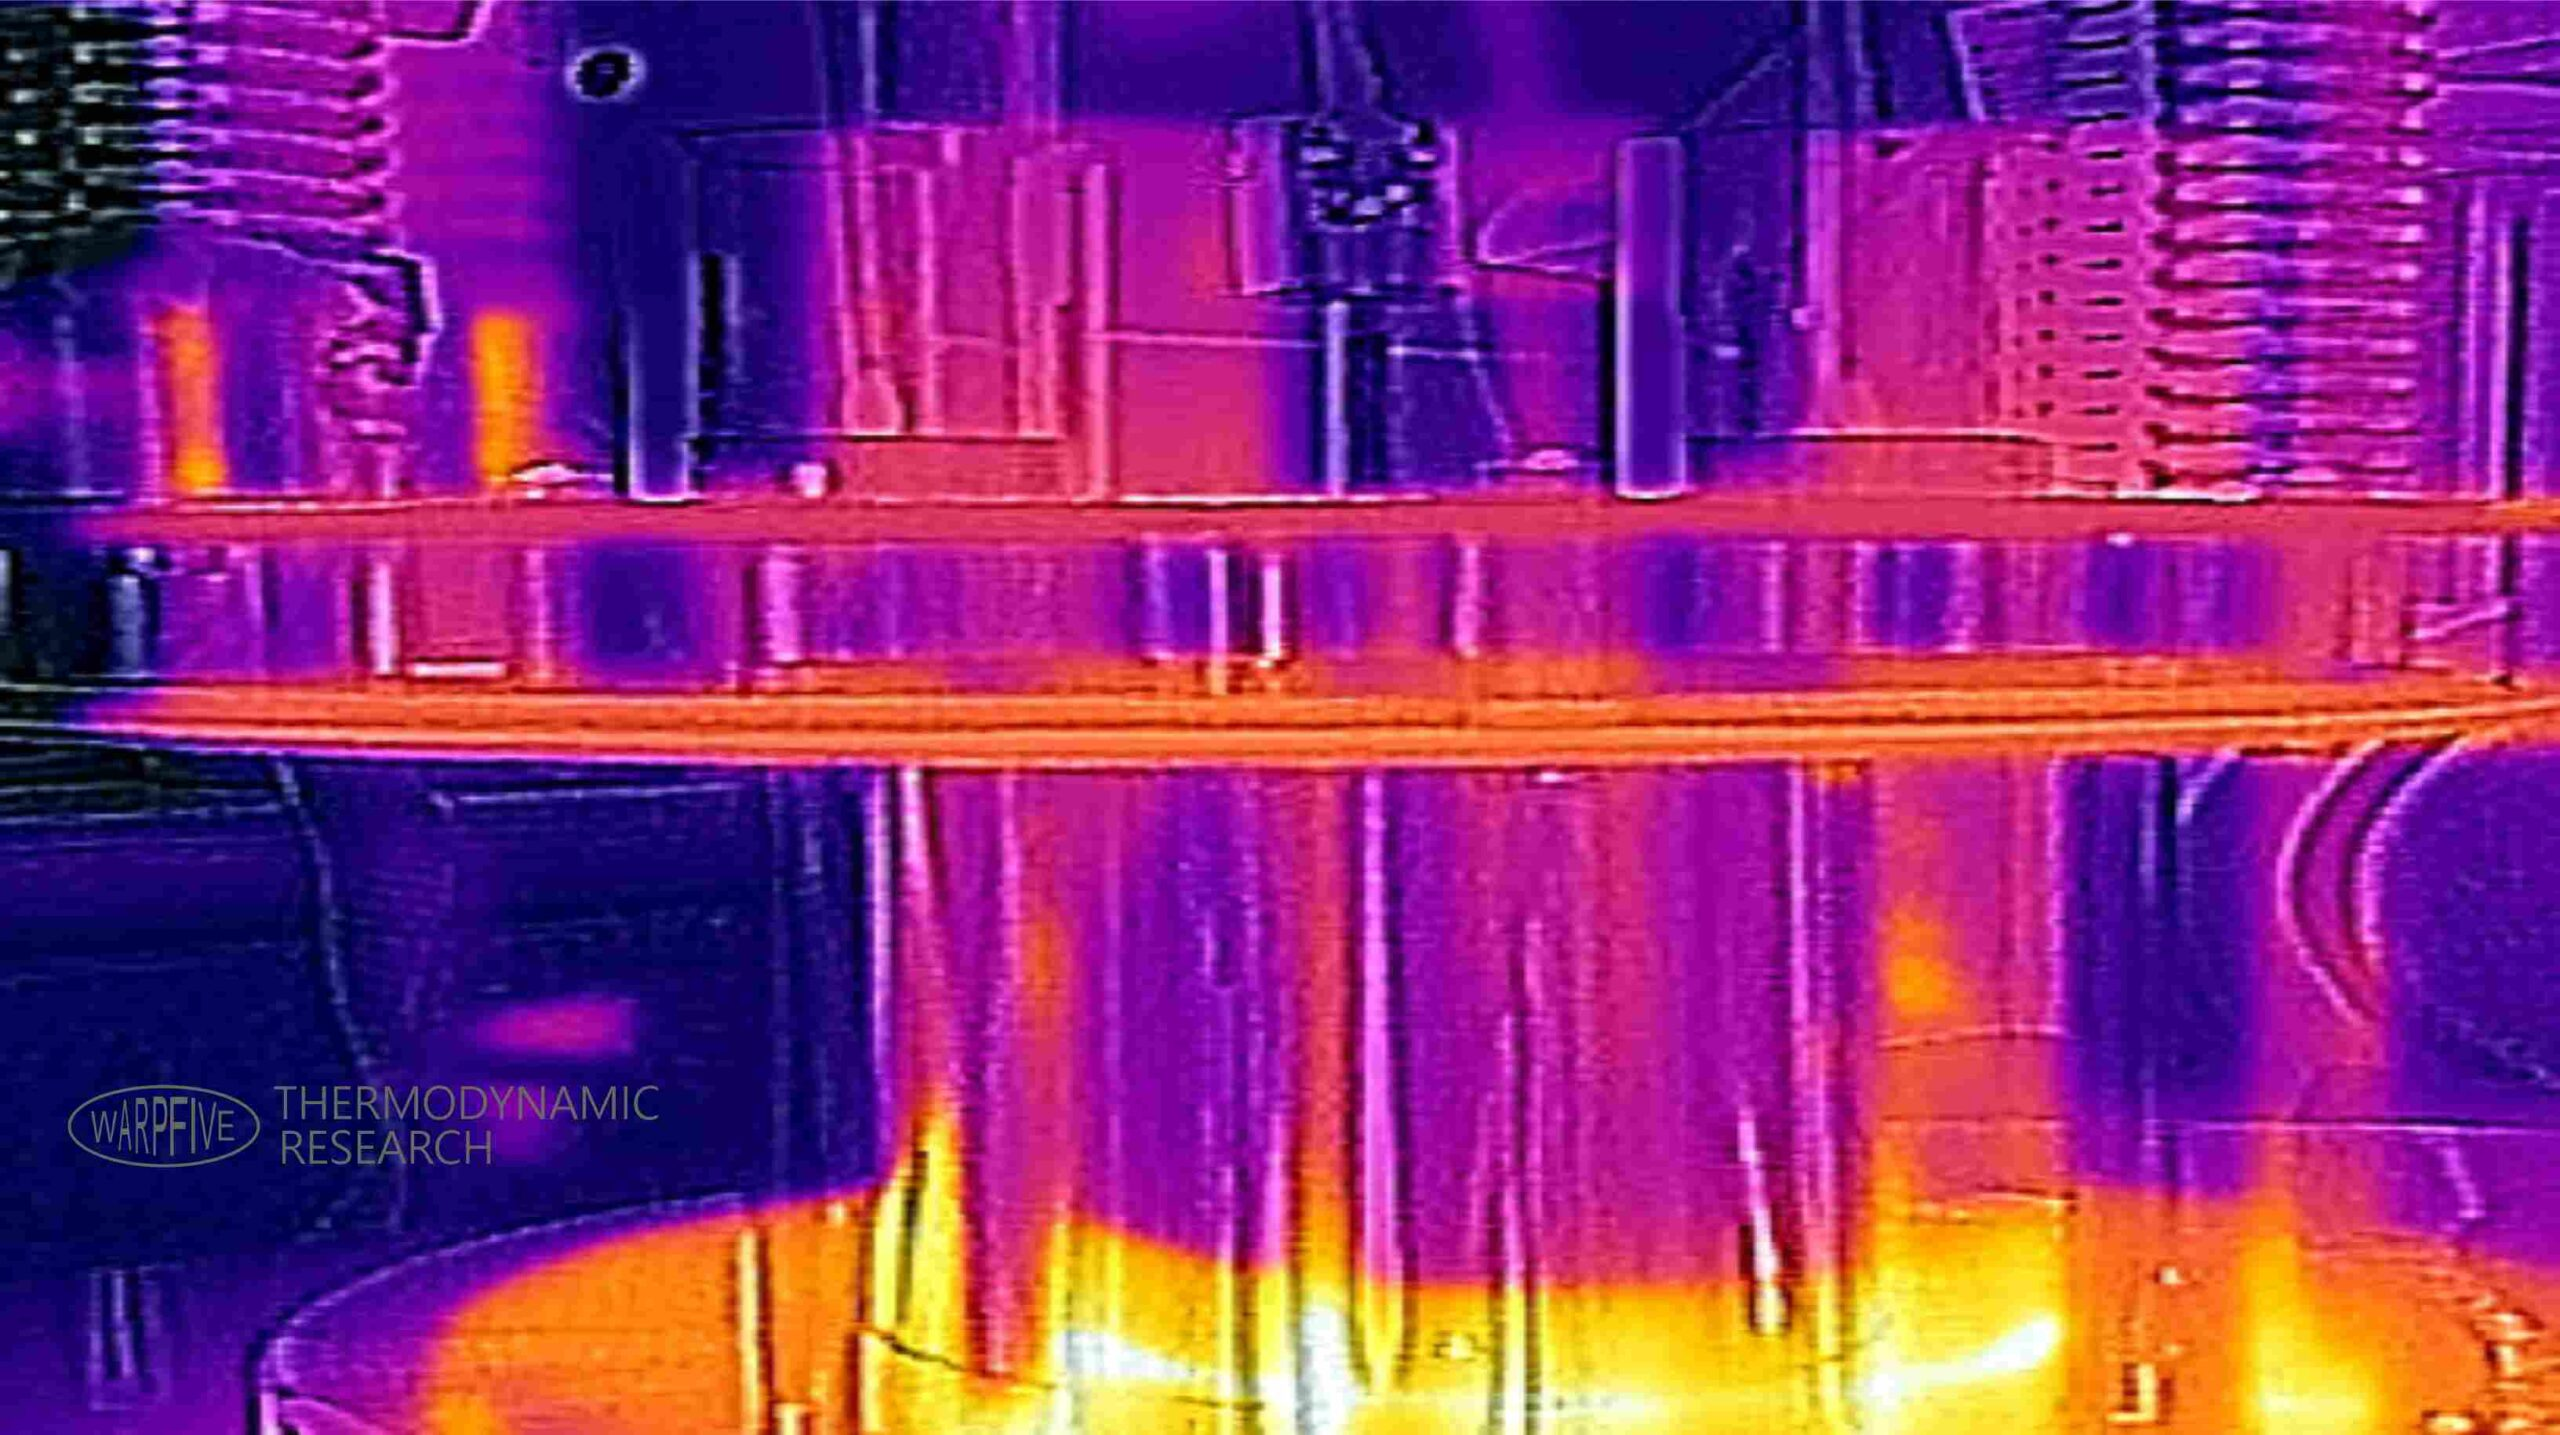 FLIR image of heat transfer within a Stirling engine indicating areas of high and low temperature